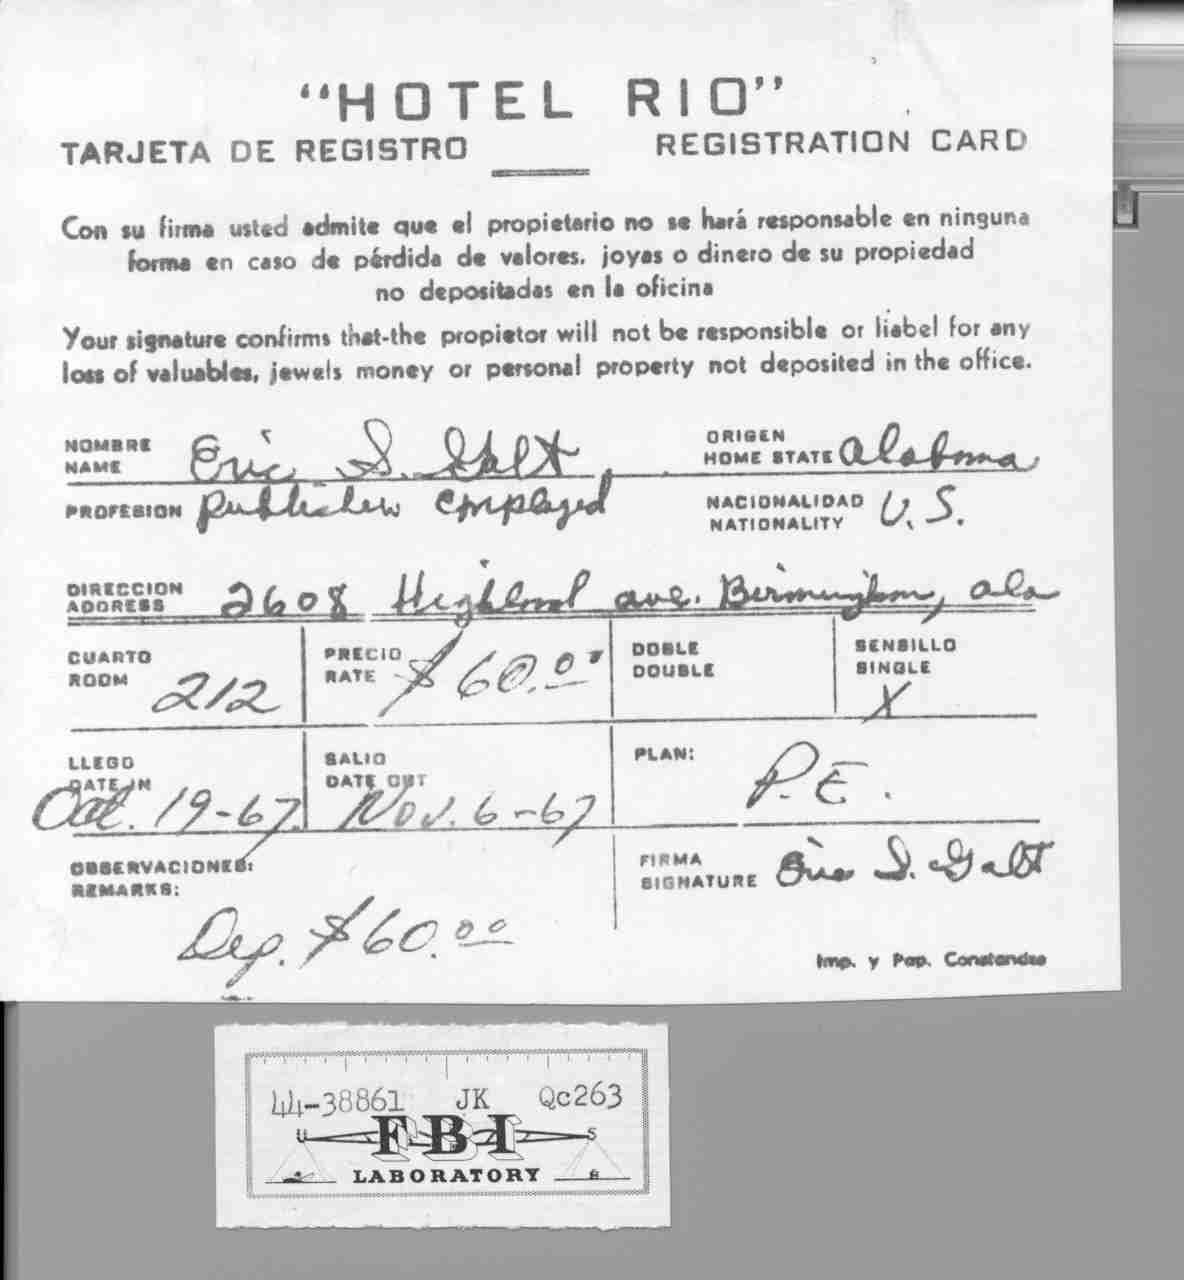 eric s galt hotel rio registration card.jpg